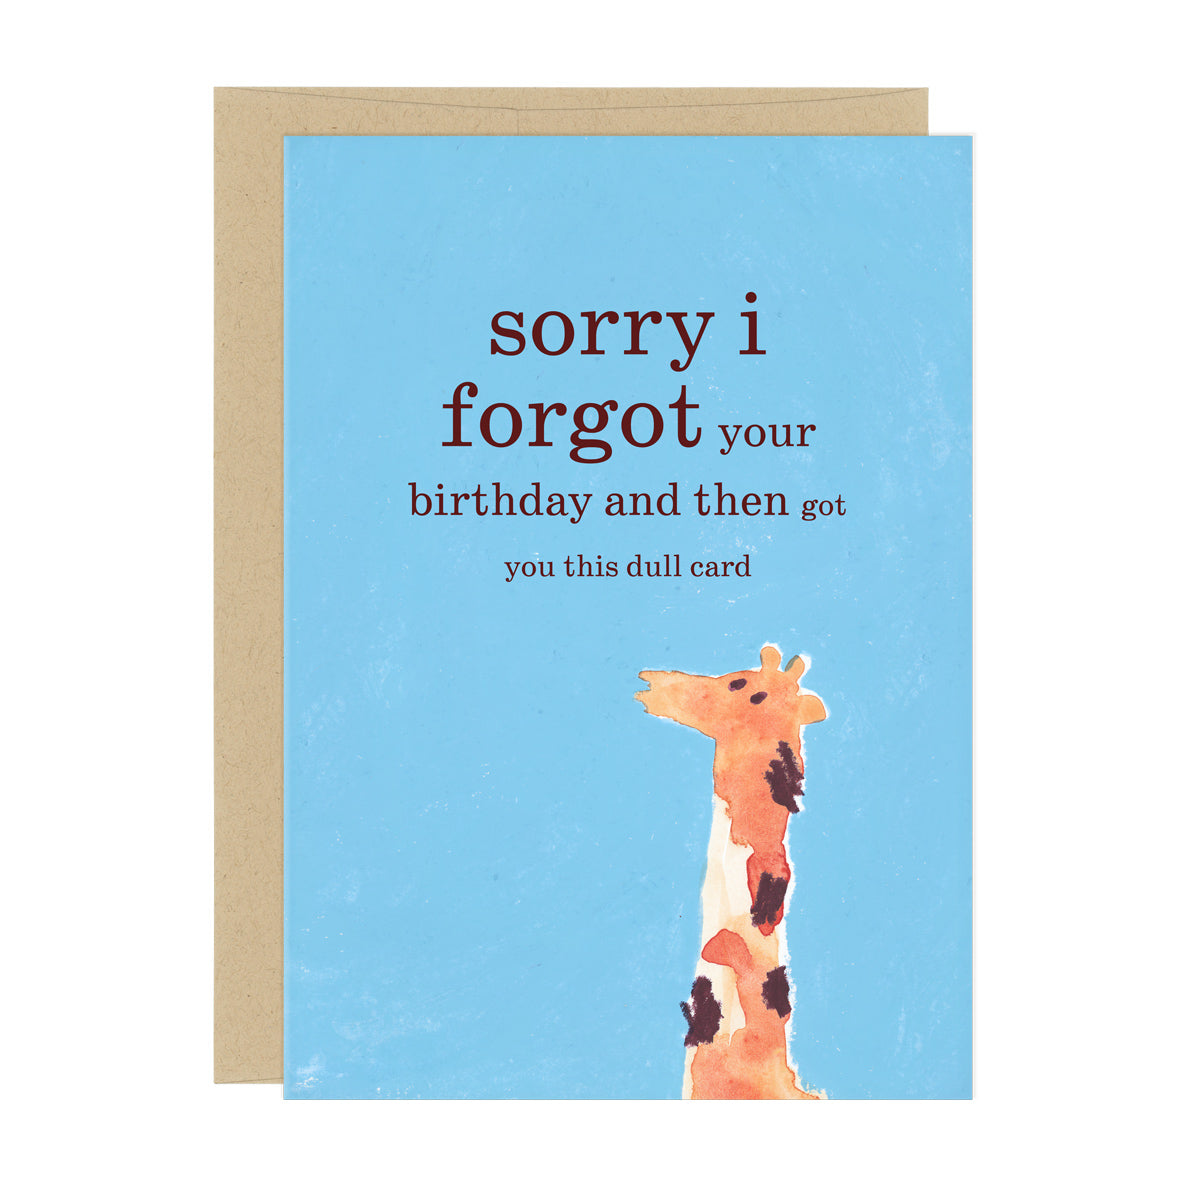 Birthday Card With A Giraffe Text Reads Sorry I Forgot Your And